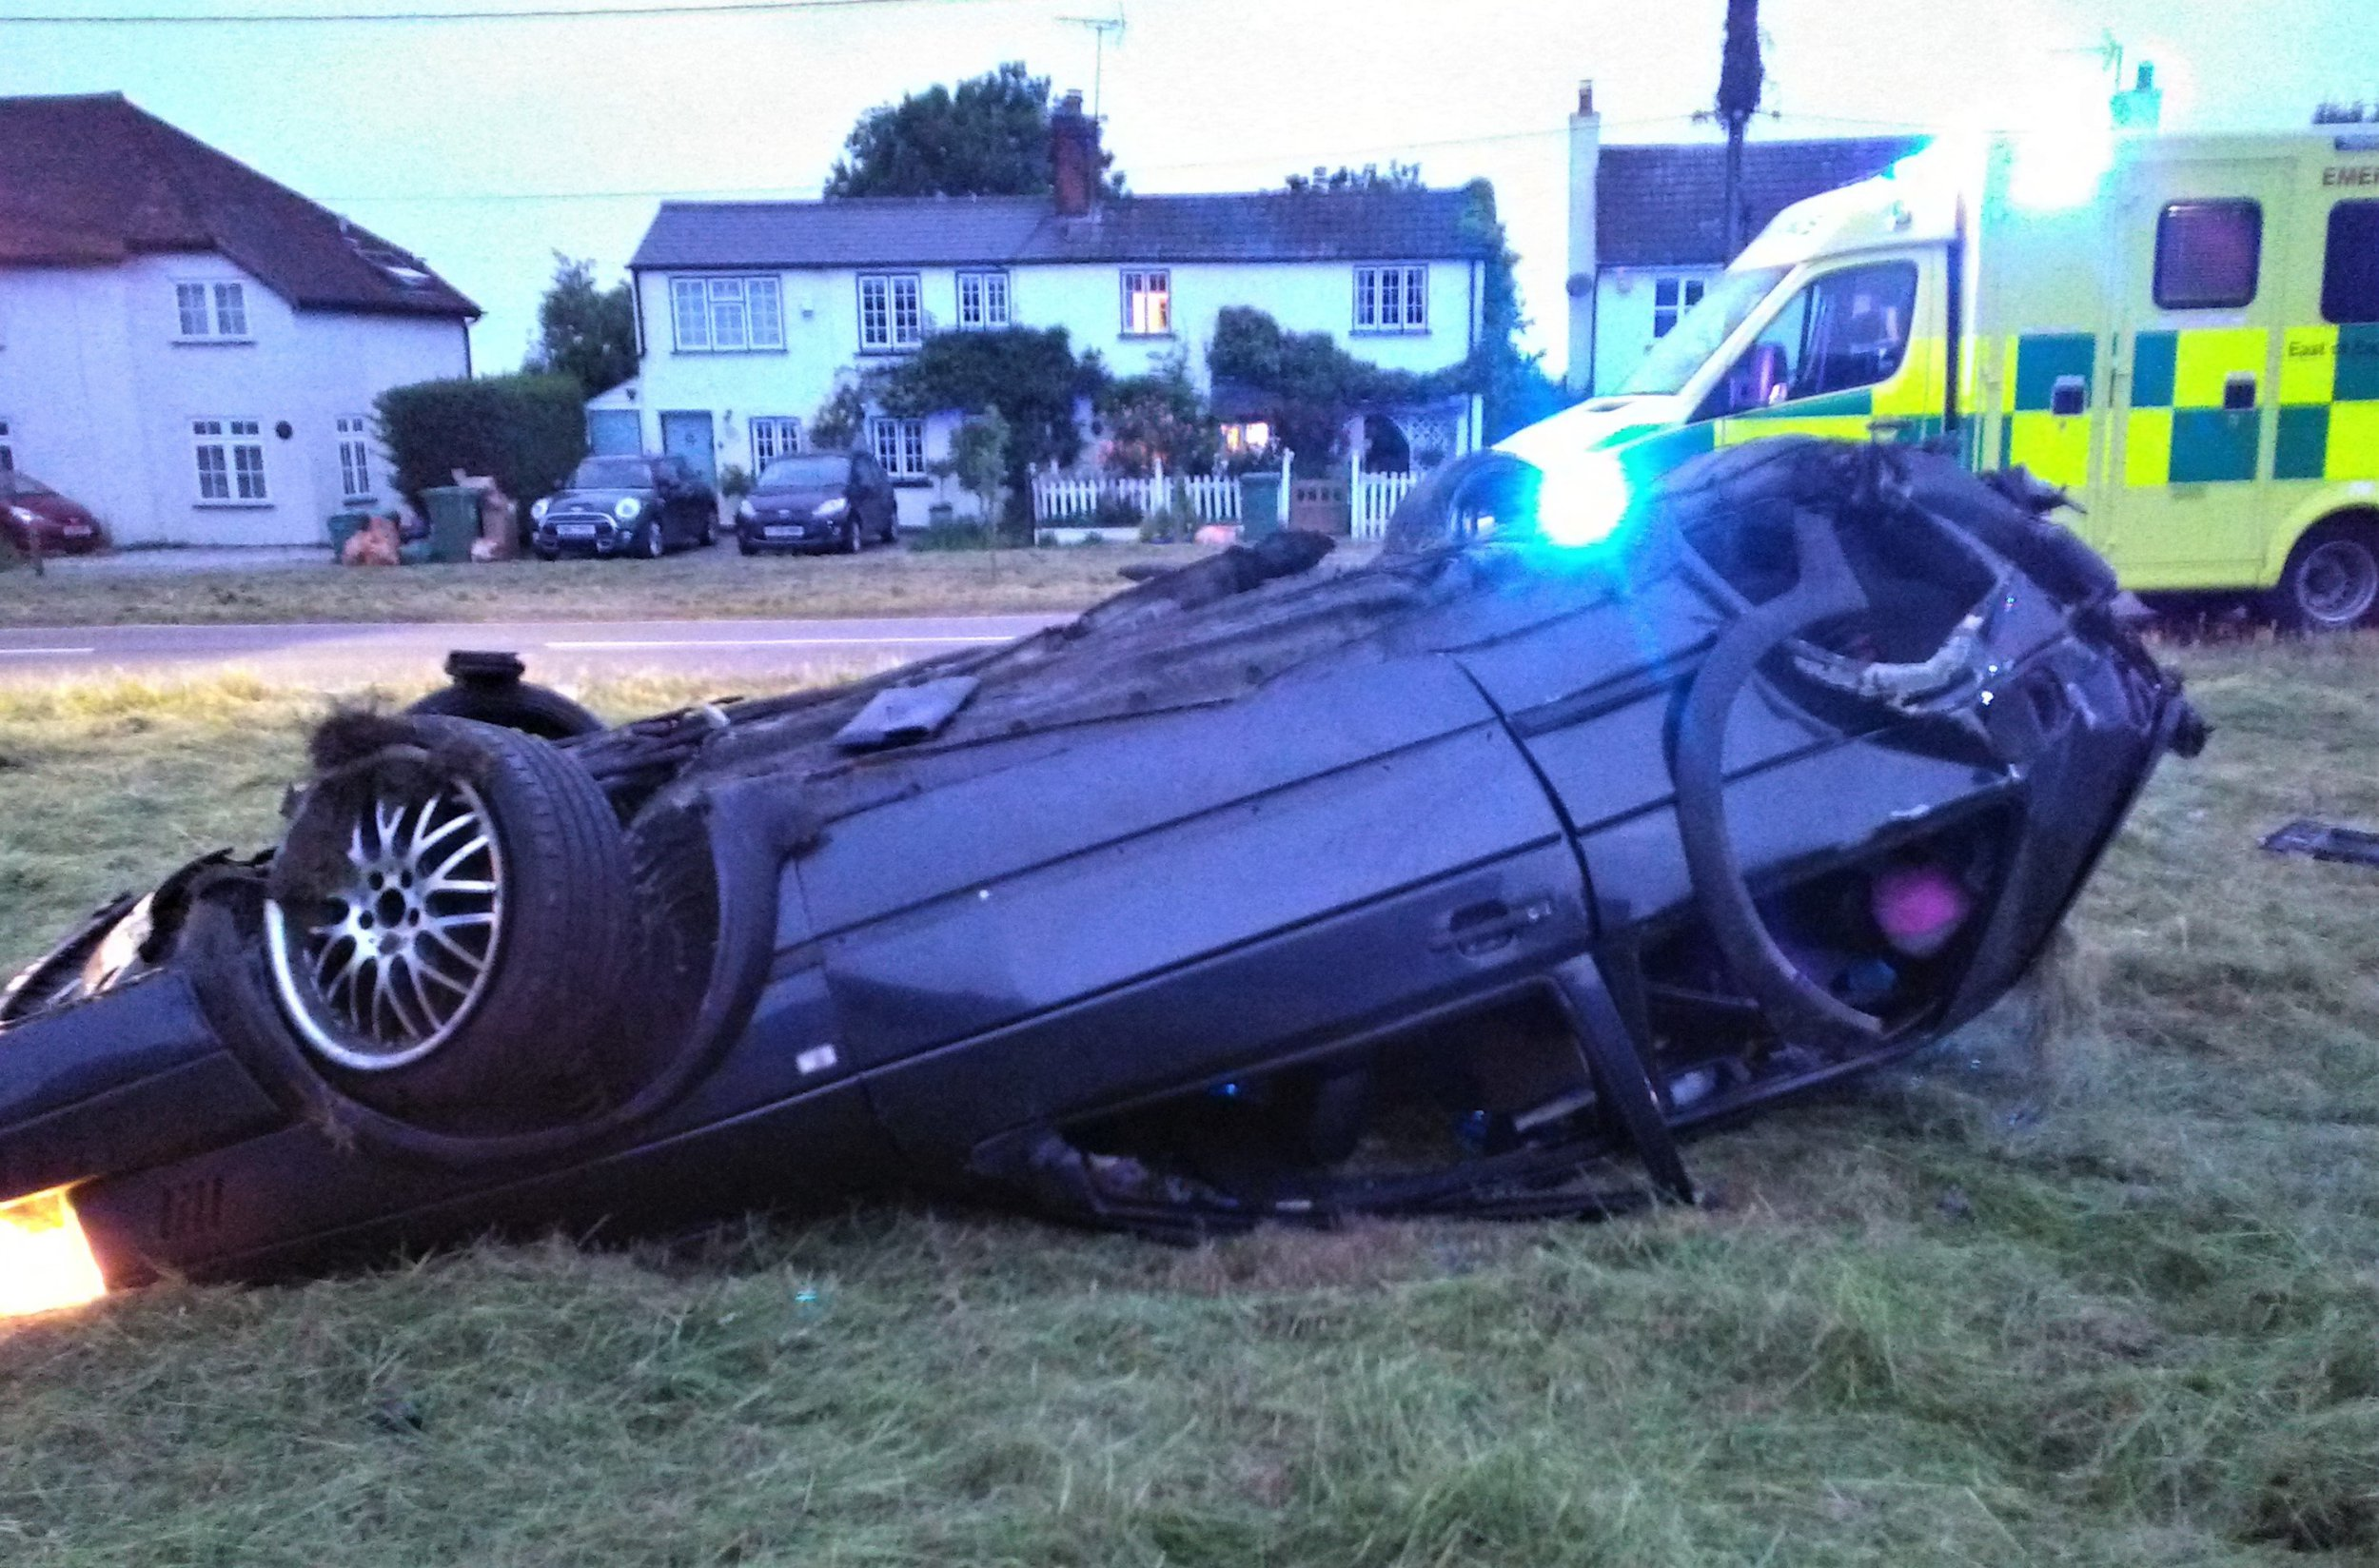 "The crashed car after hitting a deer in Navestock Side, Essex. See Masons copy MNDEER: A retired policeman has described the moment he rushed to help a couple whose car ""somersaulted three times"" after ""hitting a deer"" in the road. Rob Tyzack, 71, said he woke in the night to the sound of three louds bangs and ""screaming"" to see the wreckage of a car on the cricket pitch near his house. The trained medic ran out to find a young man lying unconscious on the ground and a woman crying by the upturned vehicle surrounded by debris."